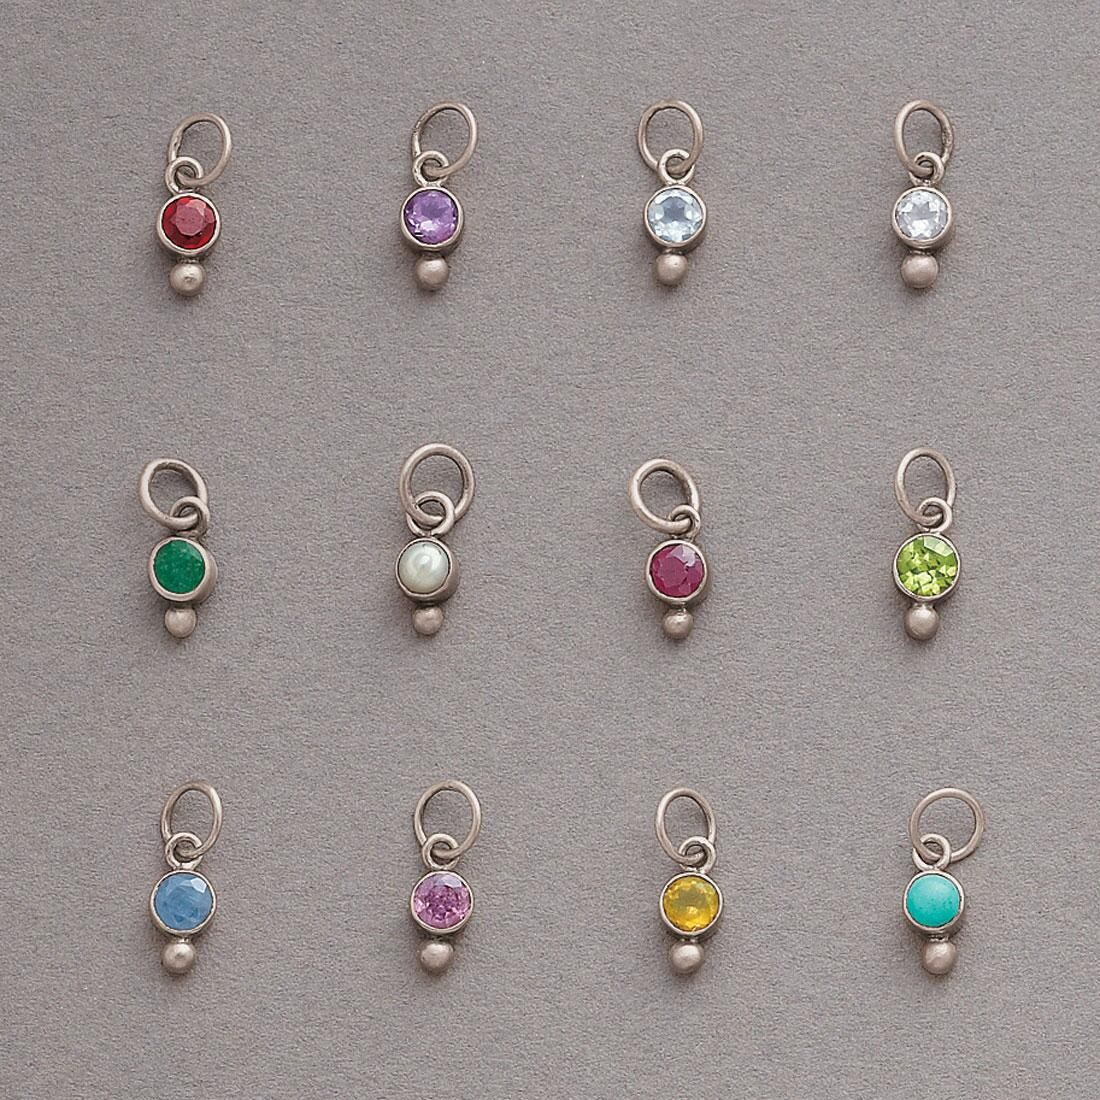 STERLING BIRTHSTONE BEZEL CHARMS: View 1